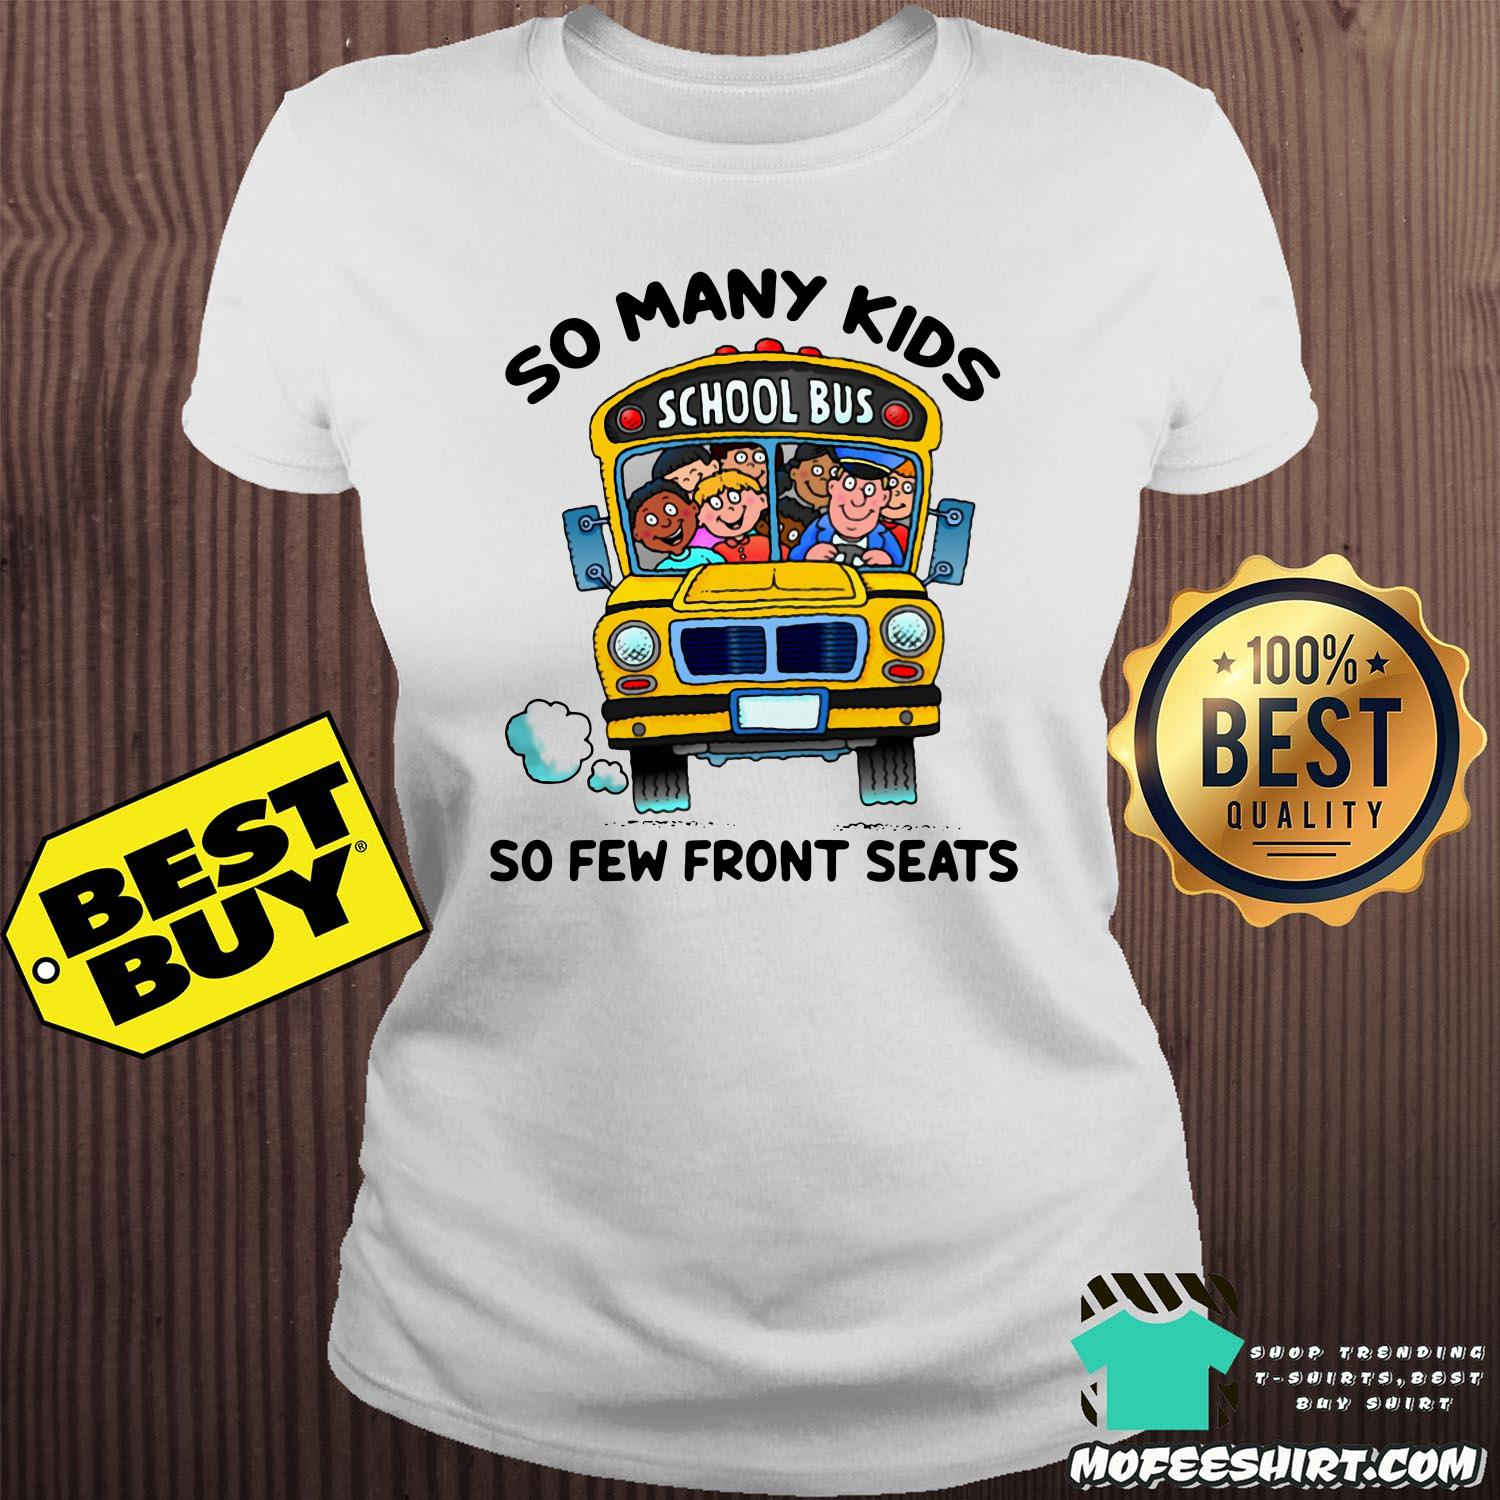 so many kids school bus so few front seats ladies tee - So Many Kids School Bus So Few Front Seats shirt